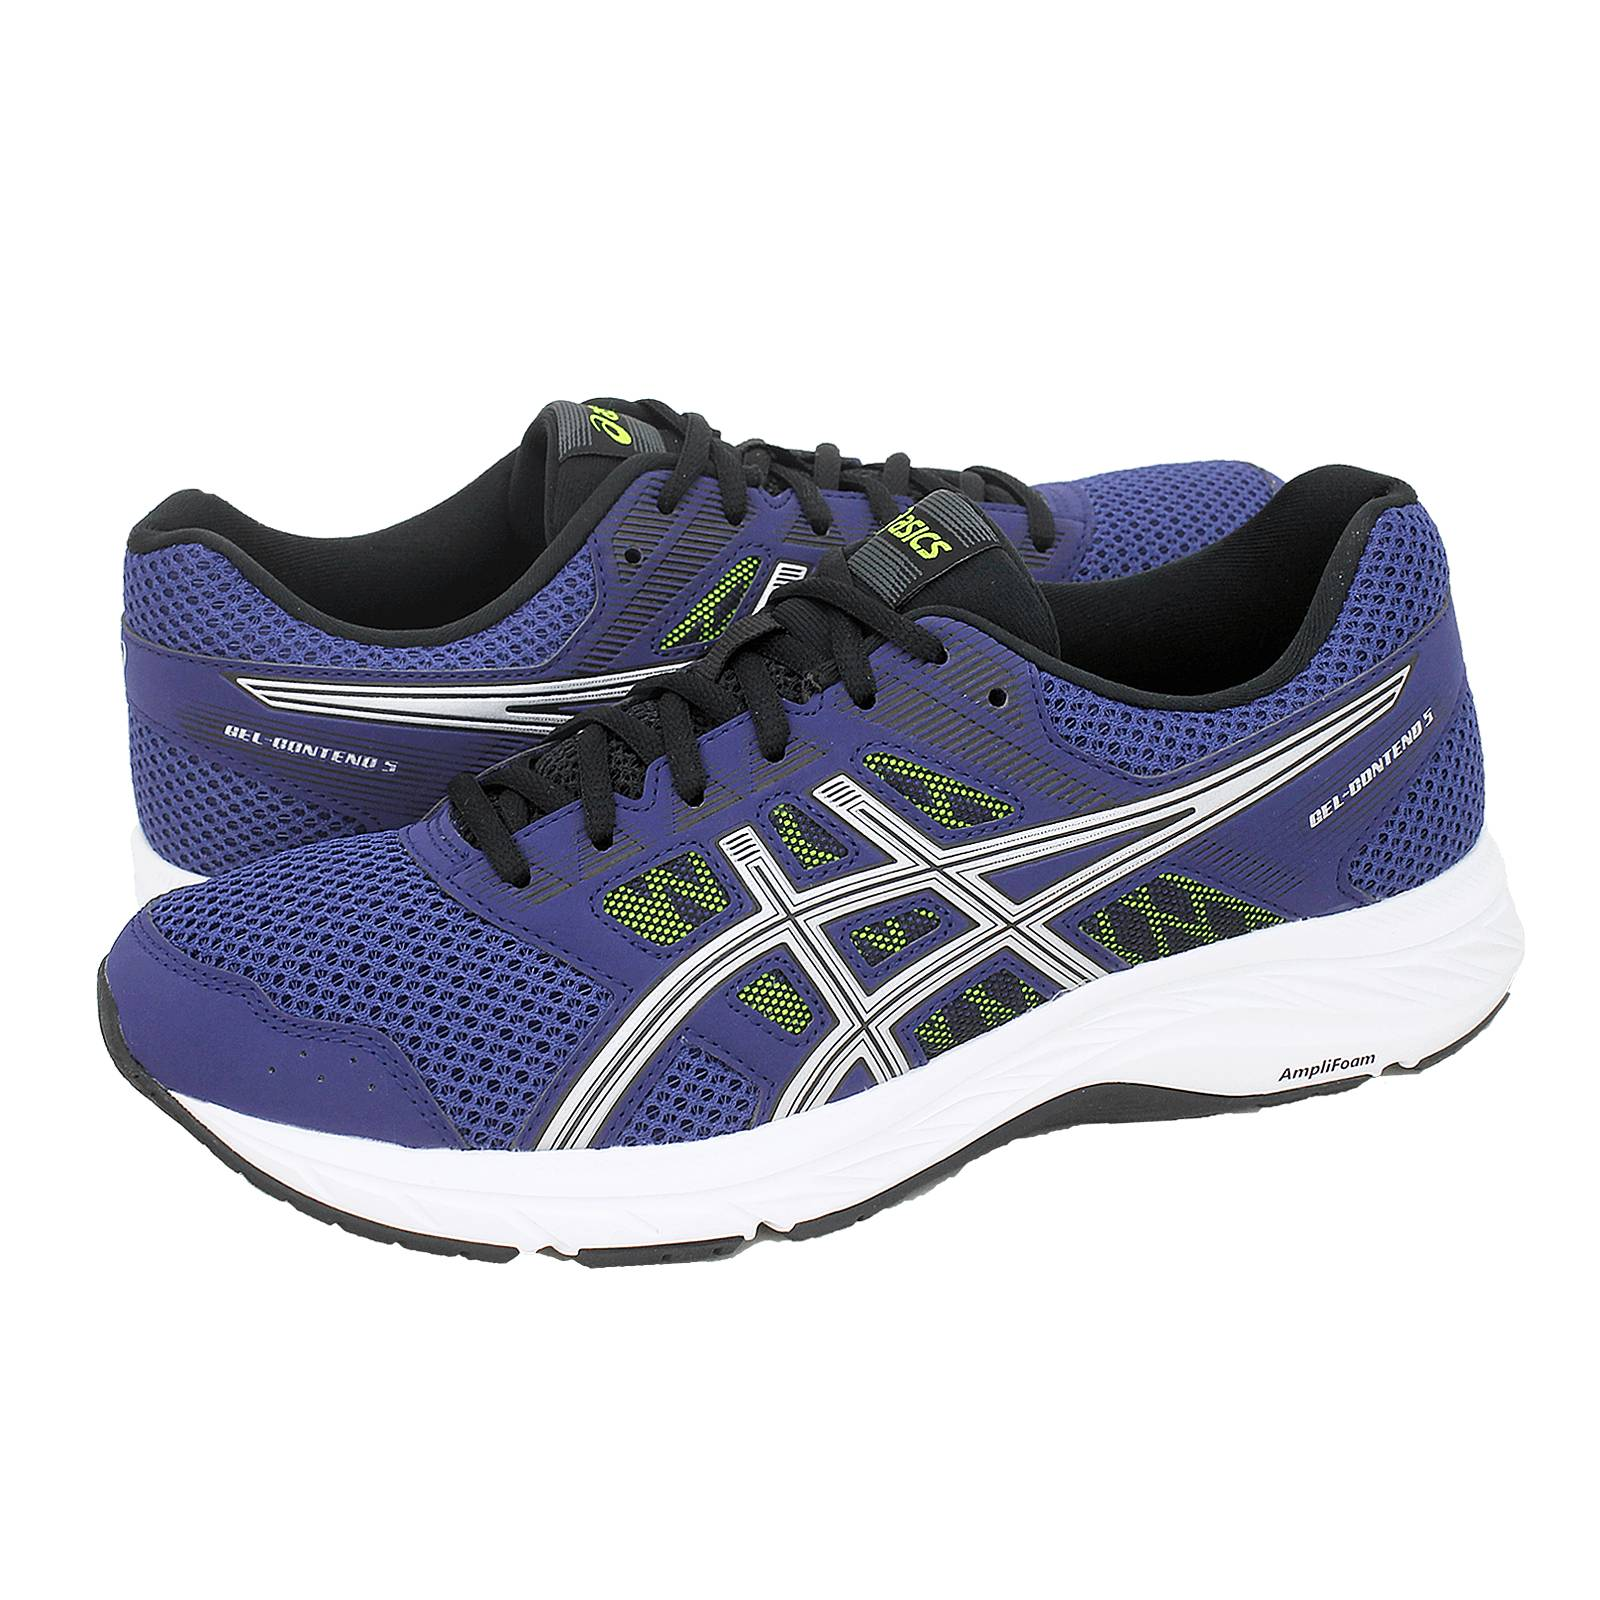 Shoes Fabric Made Gel Men's Asics And 5 Athletic Contend Of I6vfgYbym7